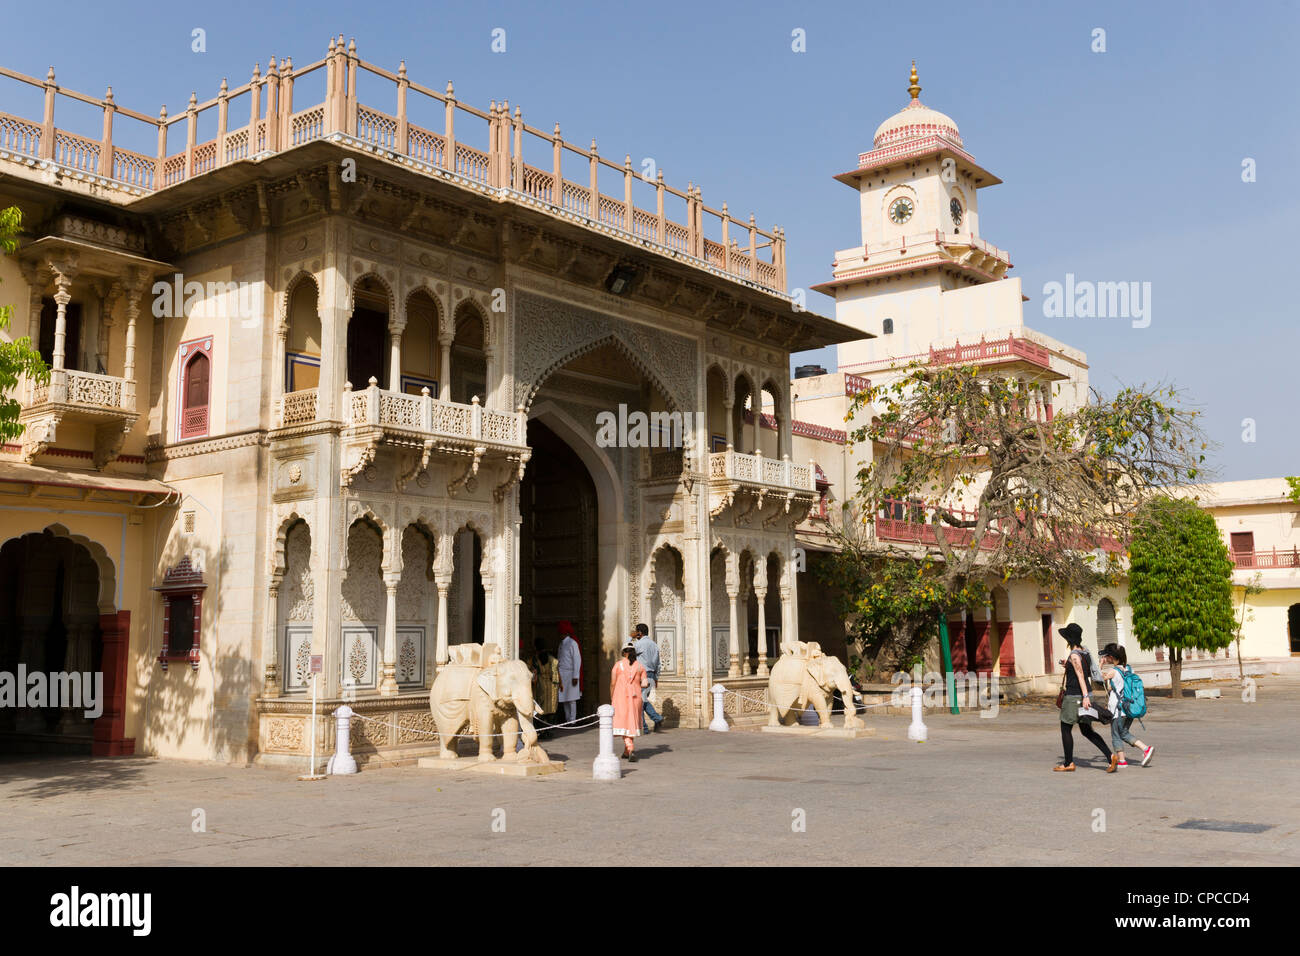 Entrance arch to the Chandra Mahal or Chandra Niwas. The most commanding building in the City Palace complex. - Stock Image